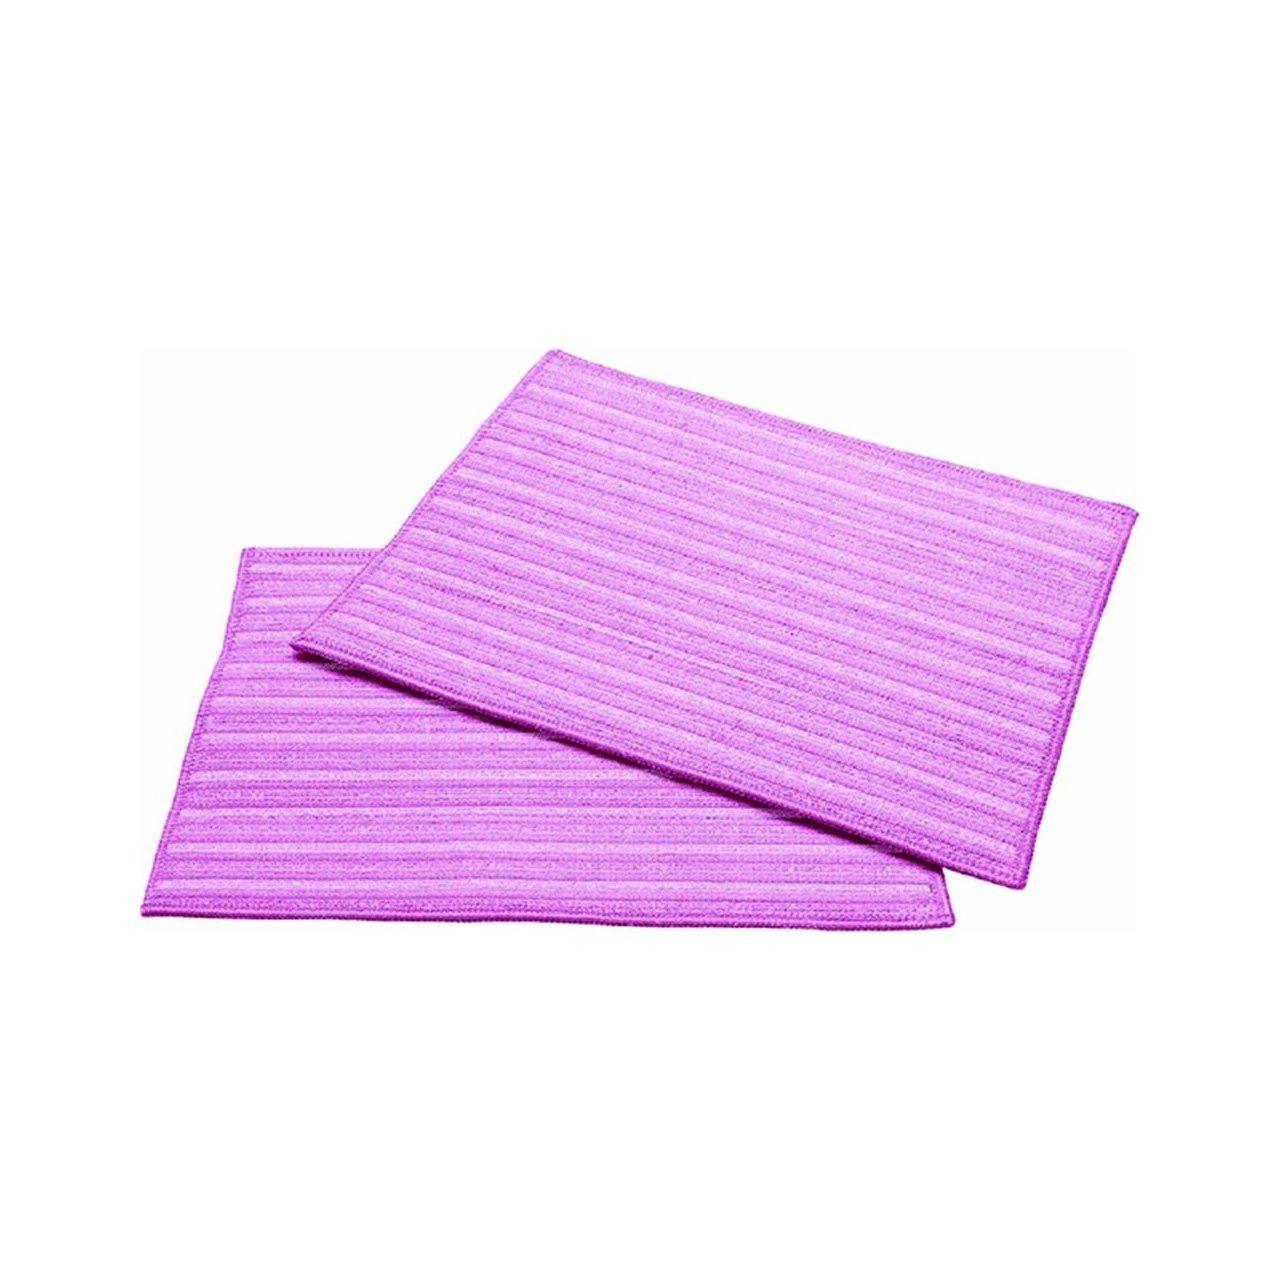 Haan RMF-2P 2-Pack Replacement Pads, Pink